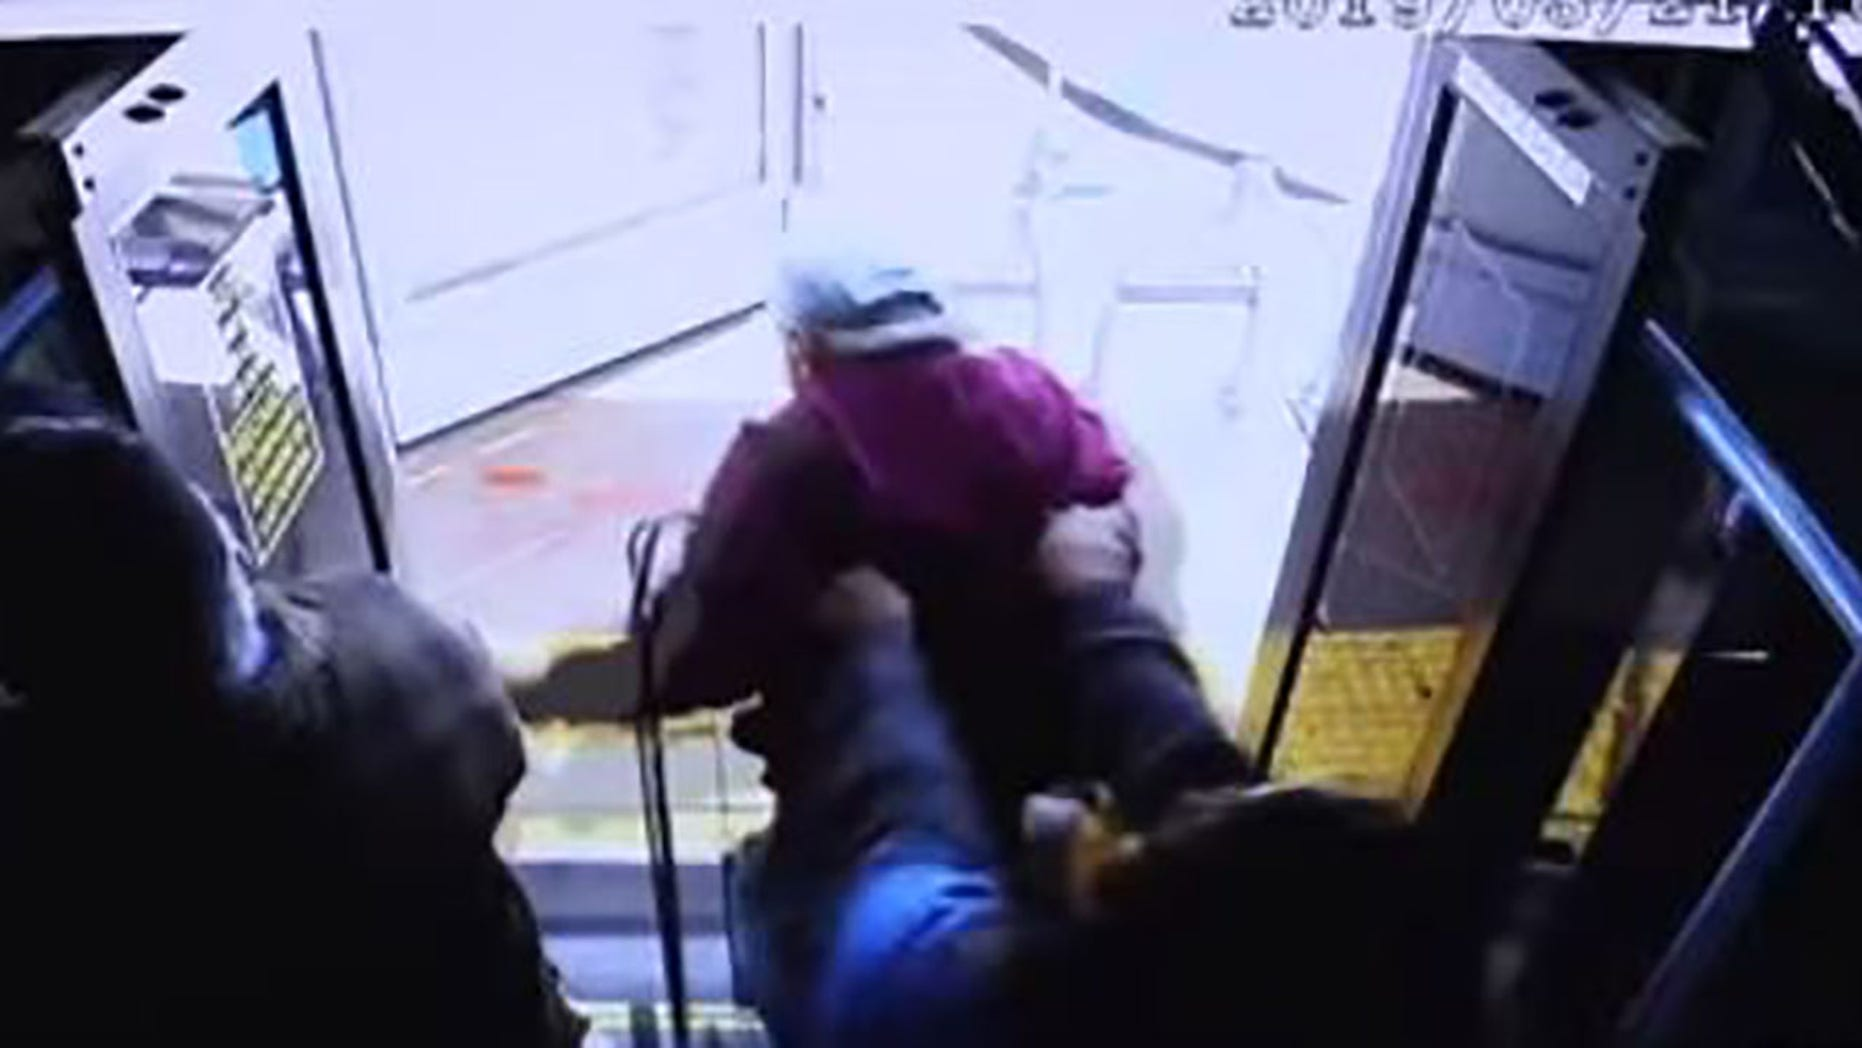 Video shows woman pushing elderly man off Las Vegas bus